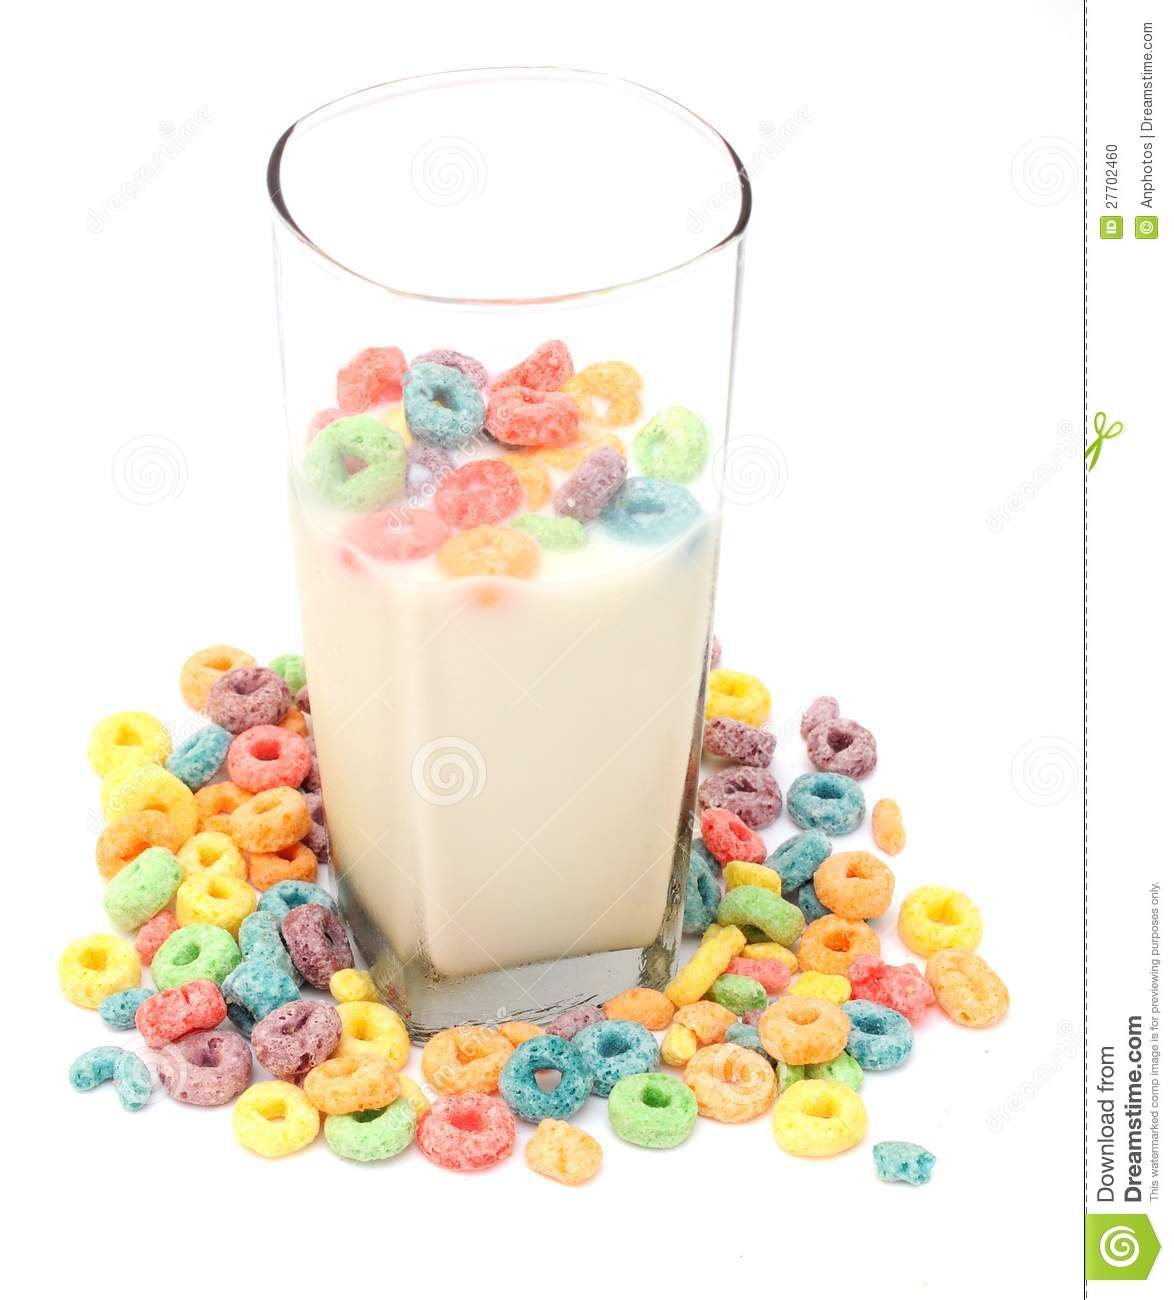 Cup Of Milk And Cereal Stock Photo. Image Of Bowl, Loops